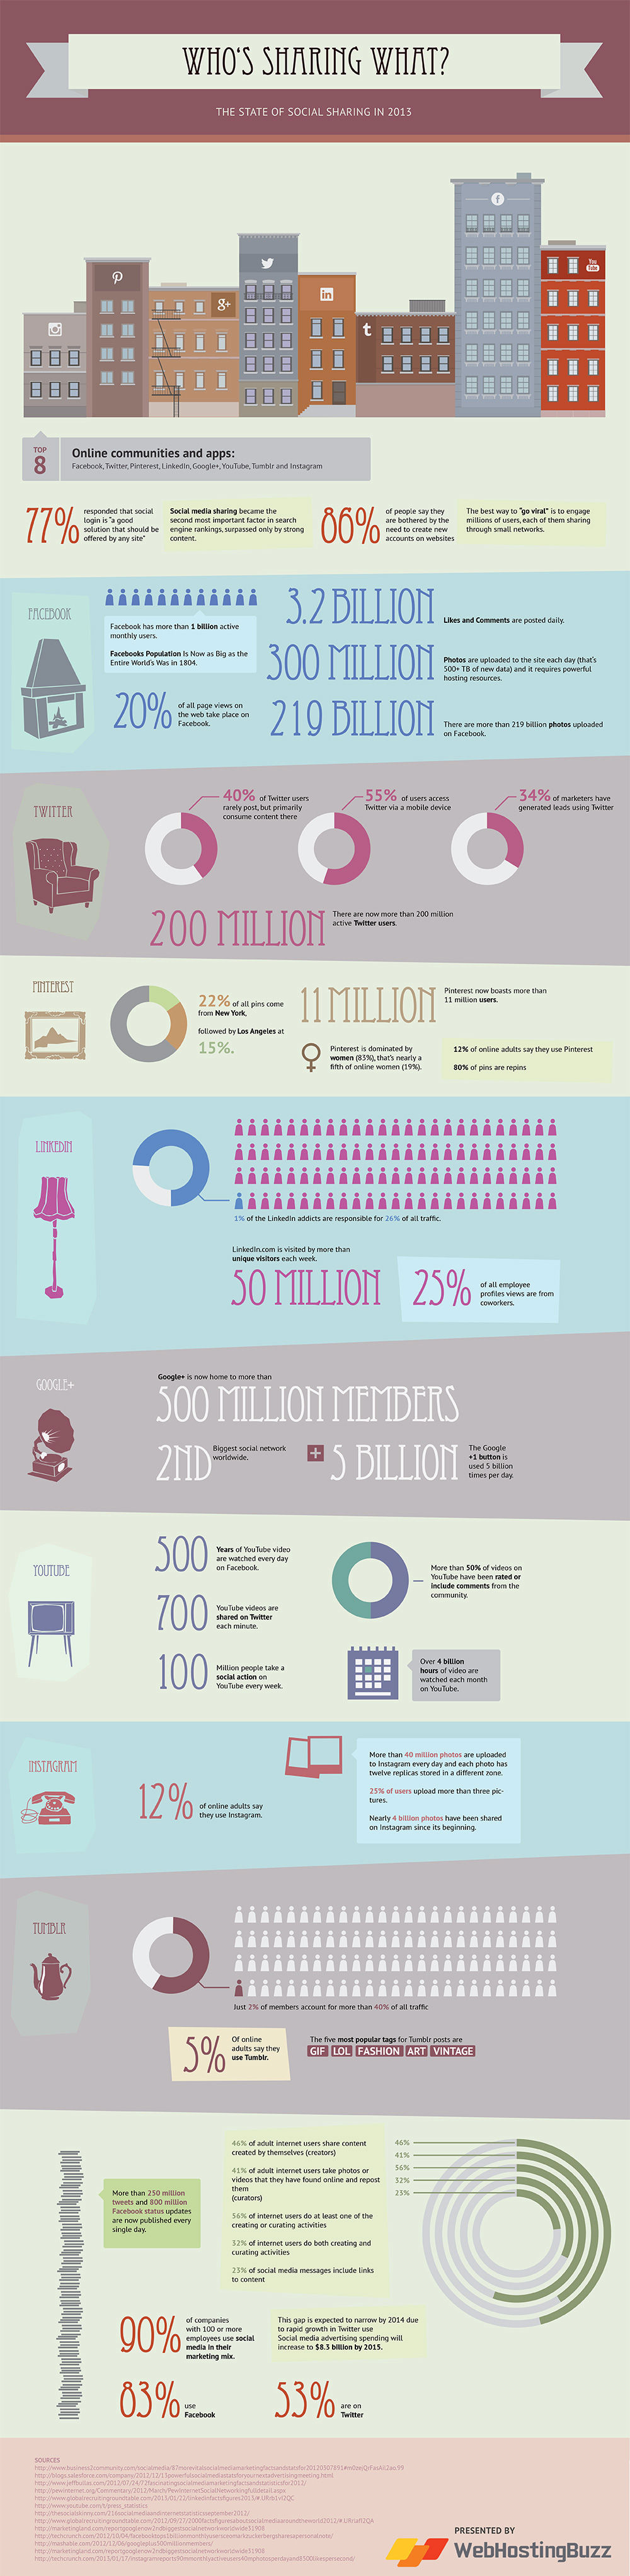 Social Sharing Trends 2013-Infographic